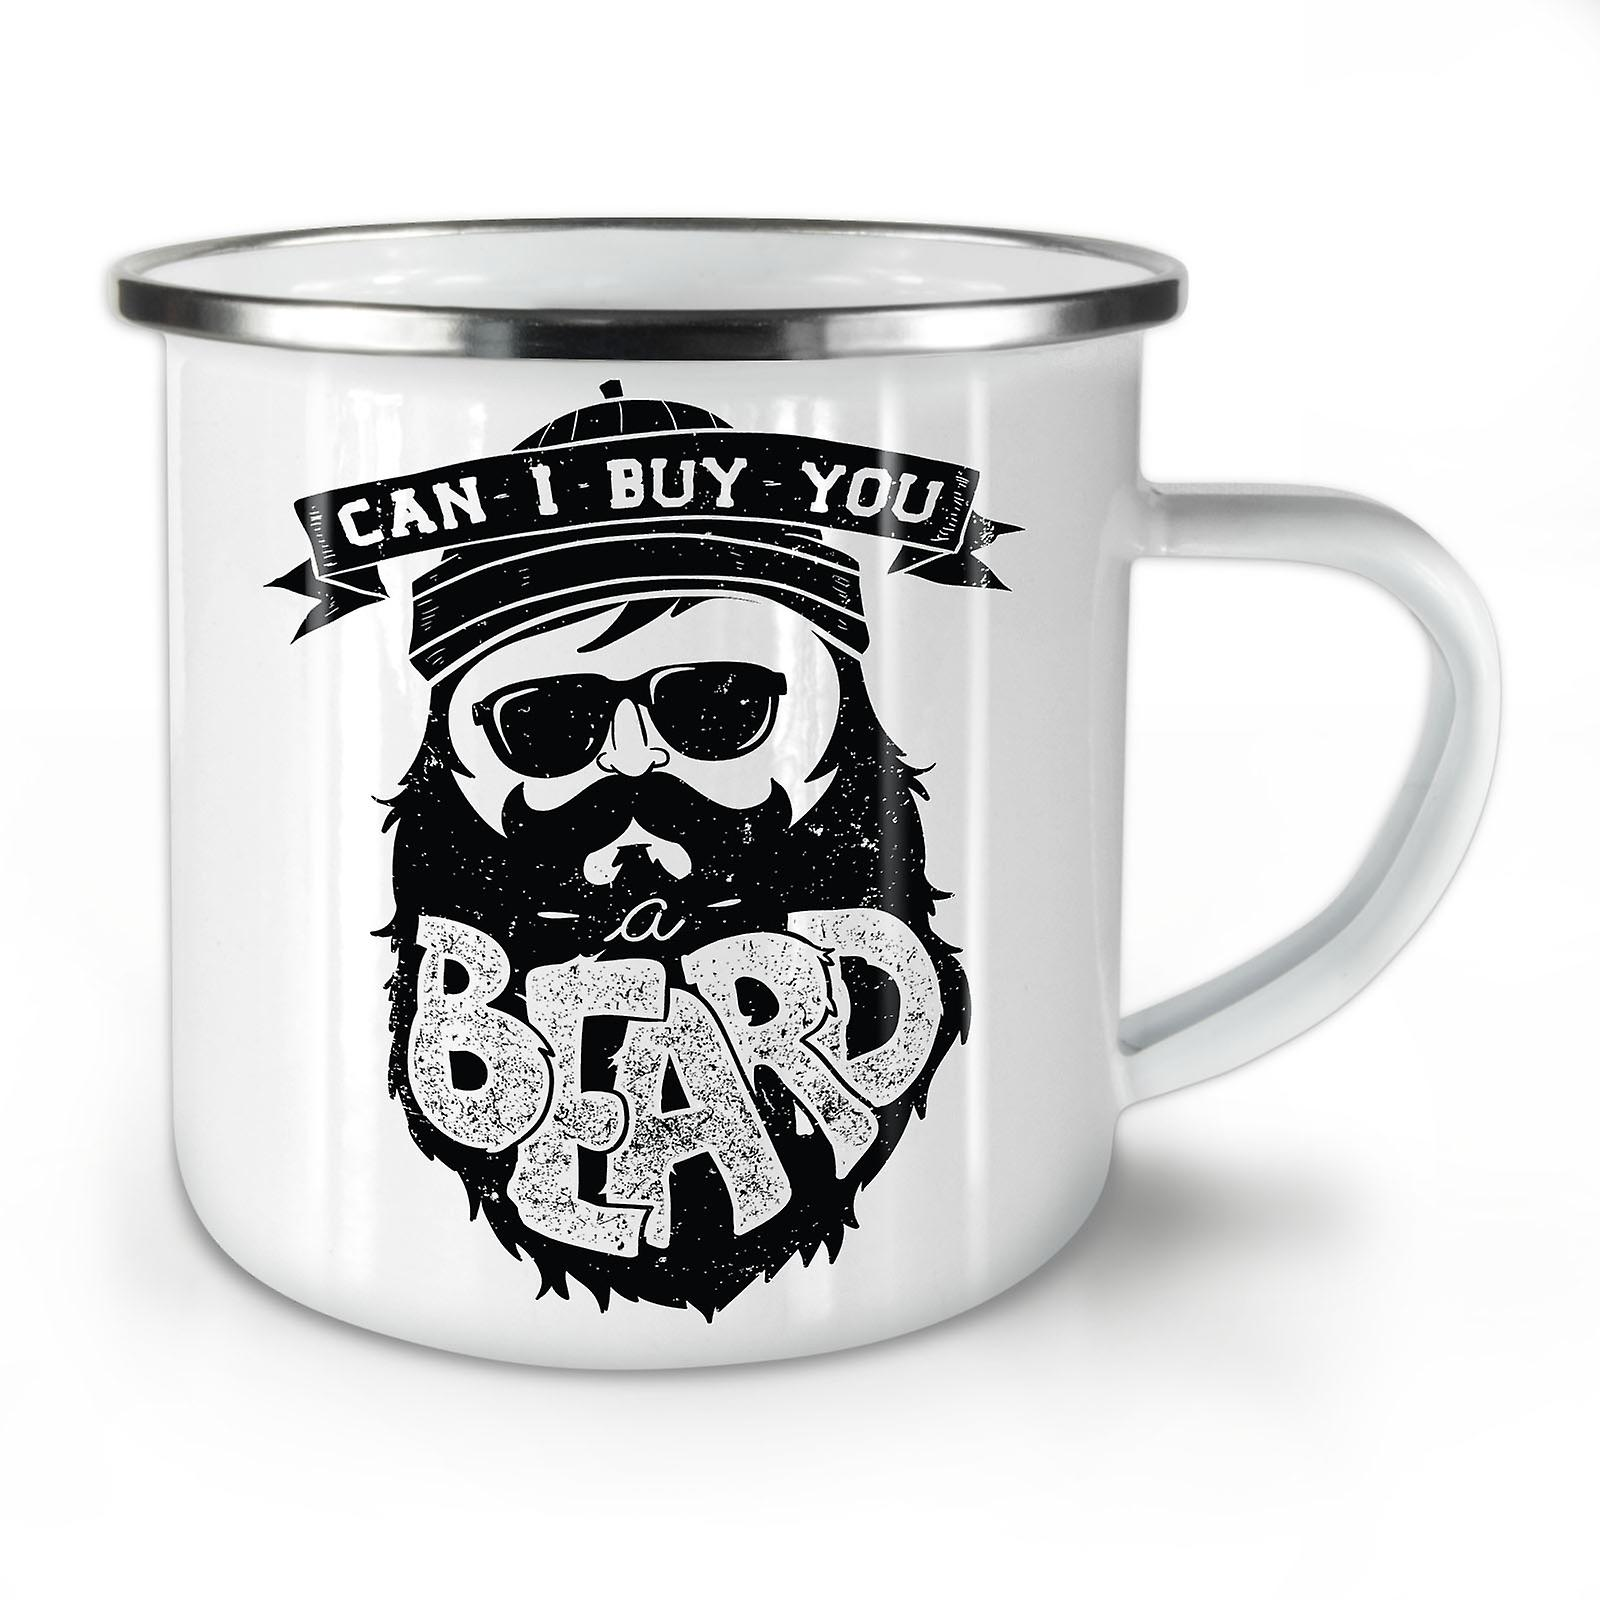 Can I Buy You Beard NEW WhiteTea Coffee Enamel Mug10 oz | Wellcoda